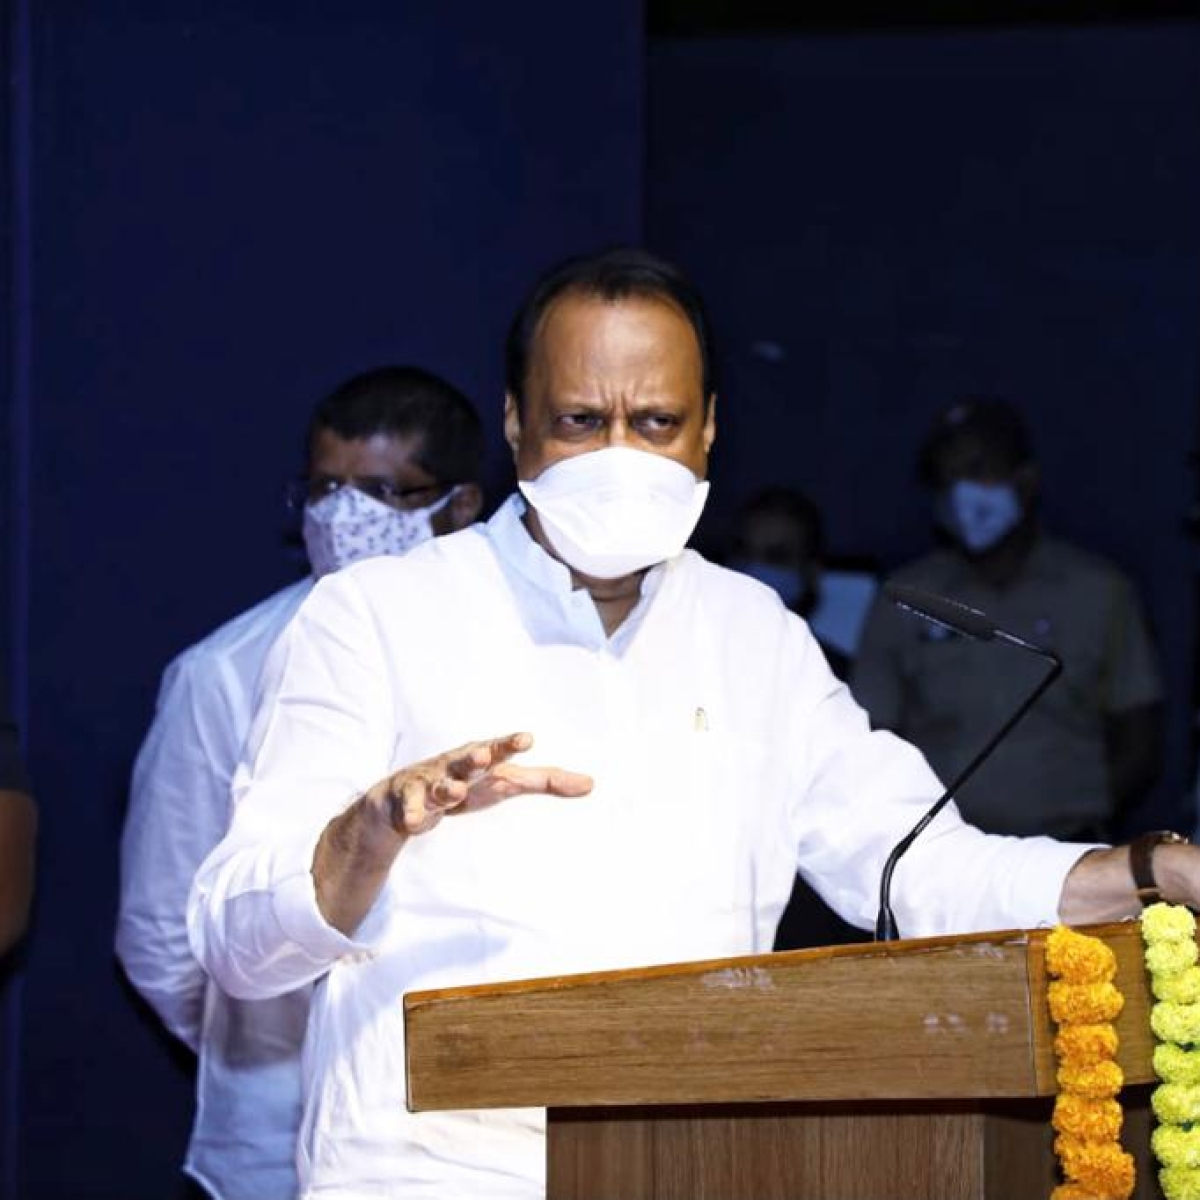 Pune COVID-19 surge: Guardian minister Ajit Pawar to hold review meeting today; decision on new restrictions likely